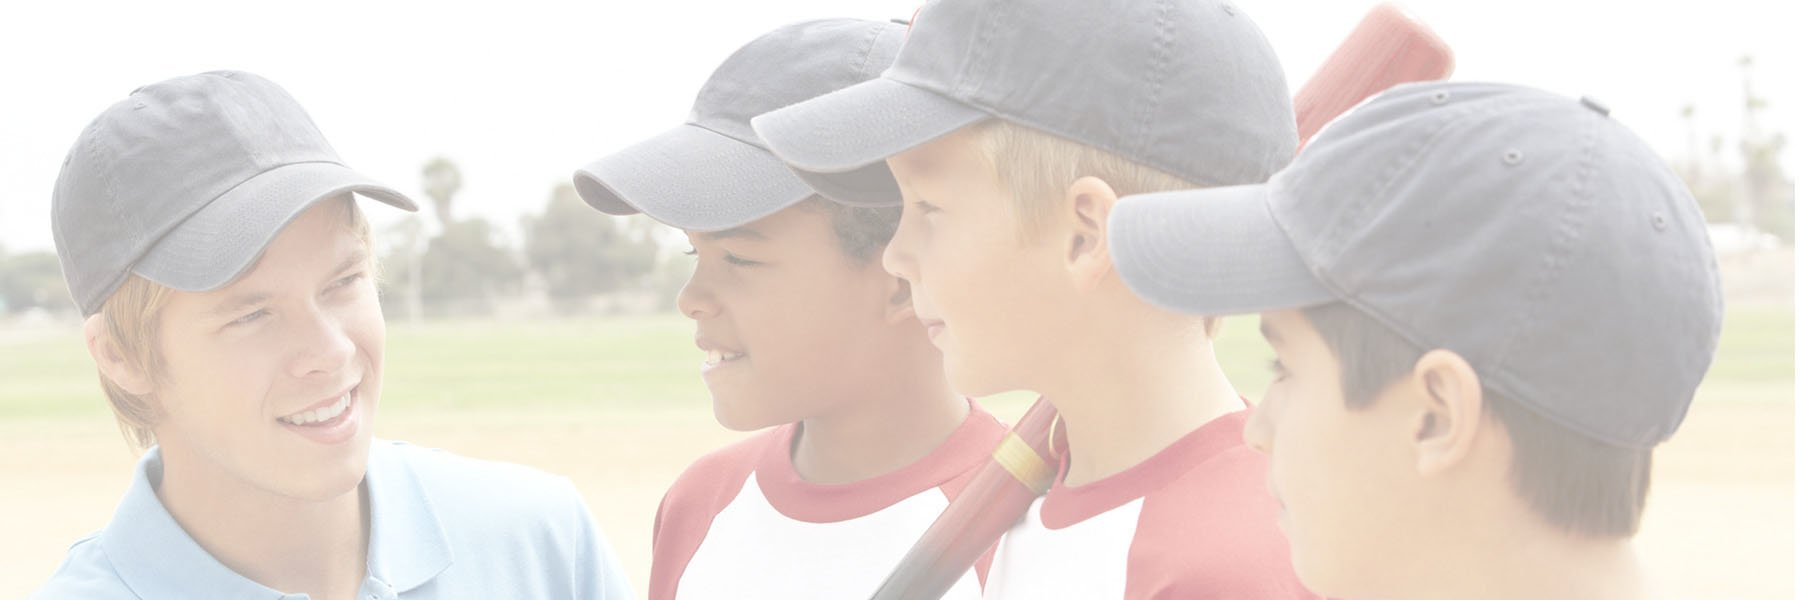 baseball club and league management software